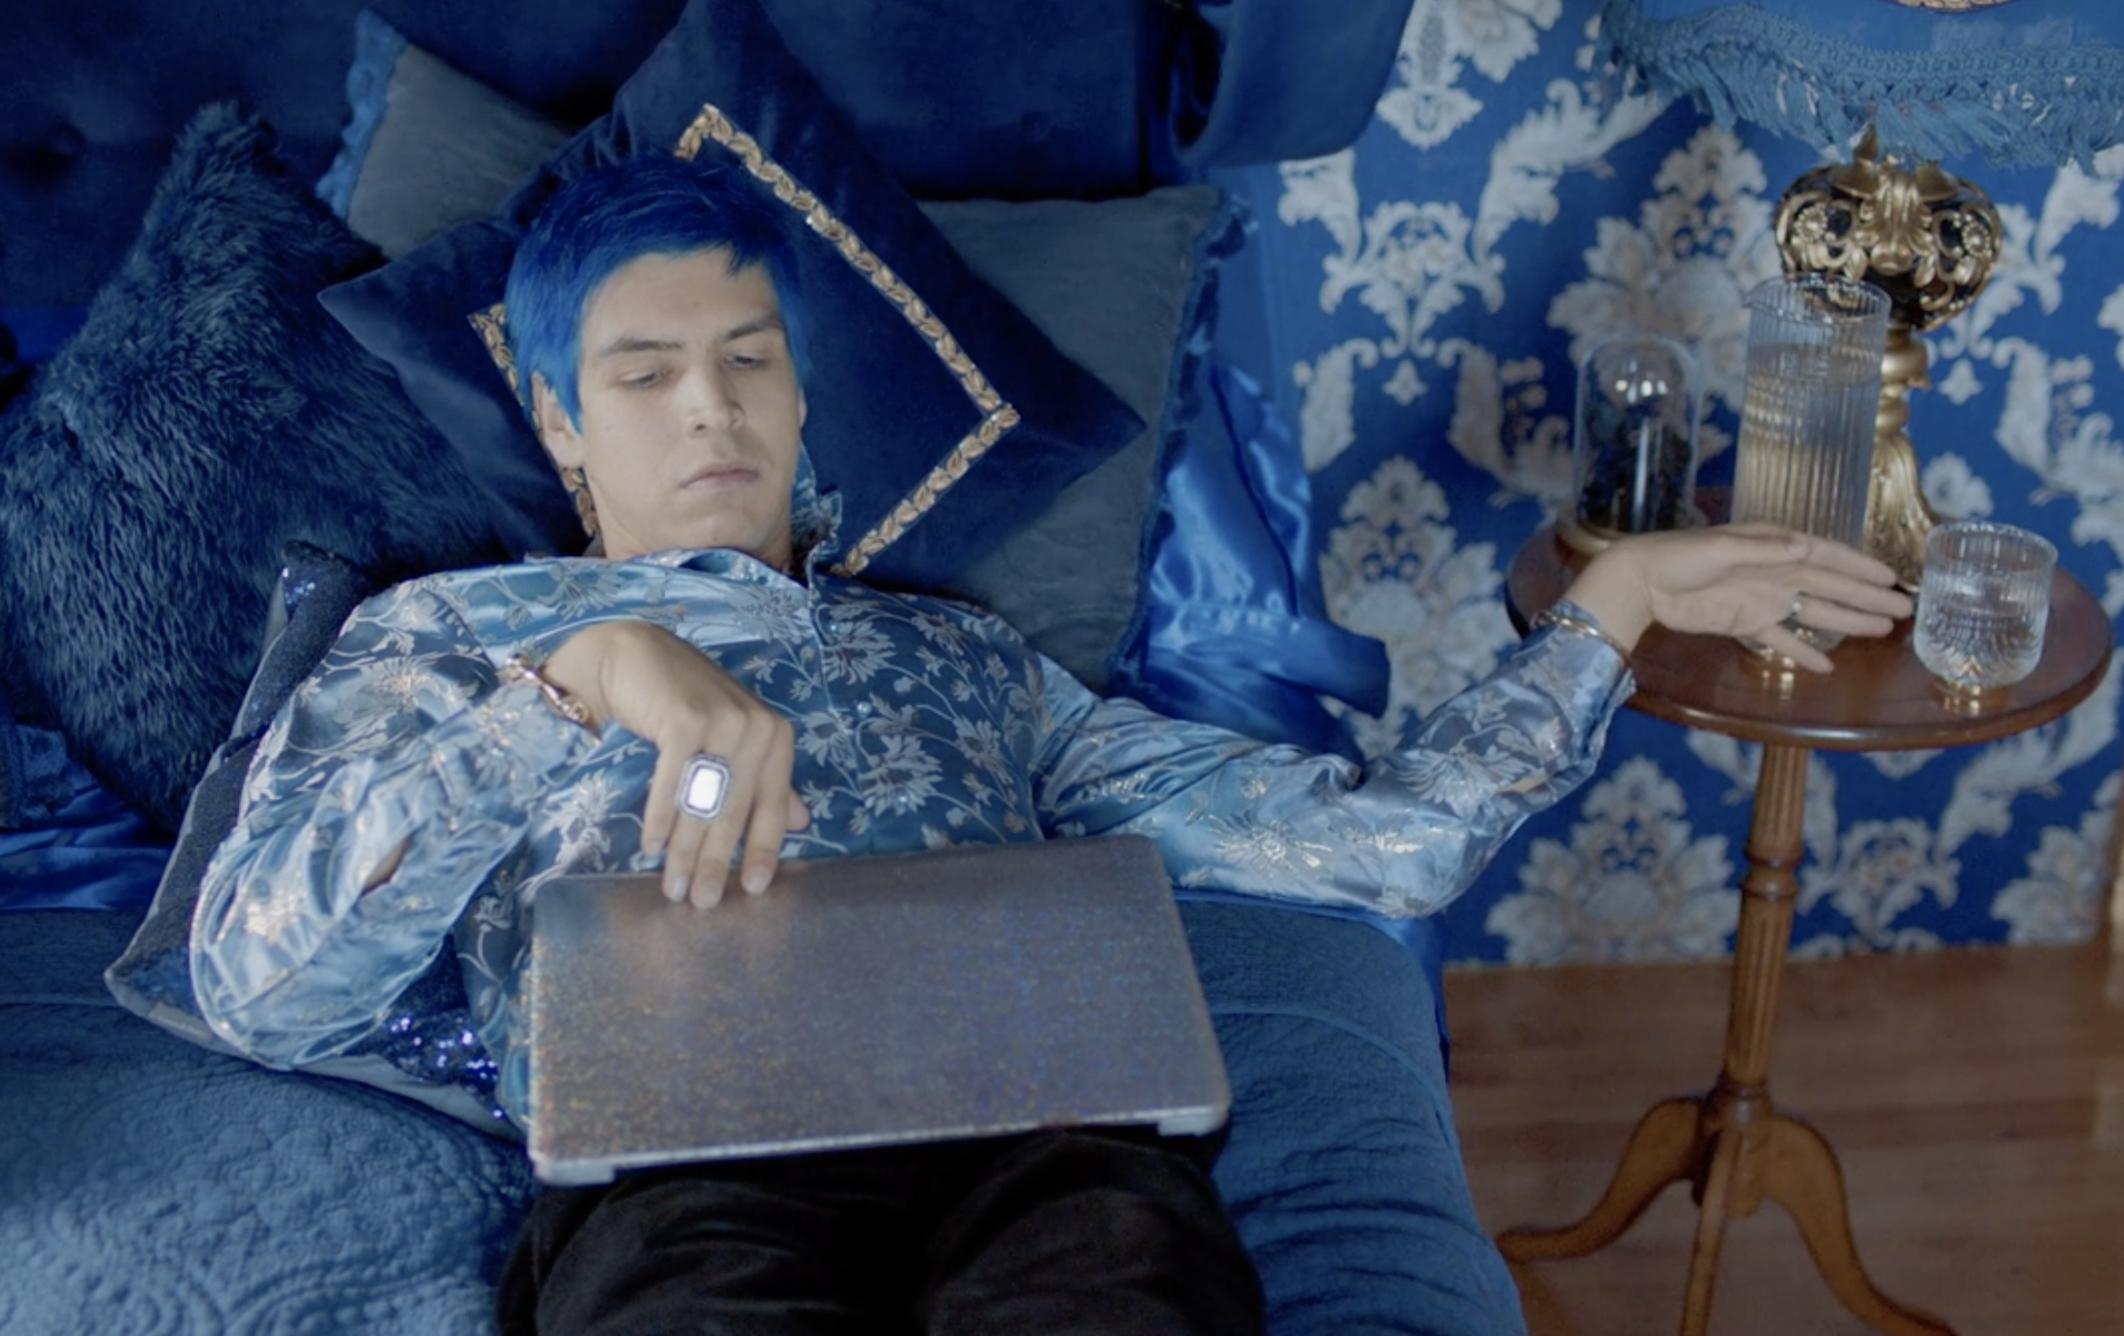 Andres laying in bed with his laptop while wearing a blue floral silk button-up